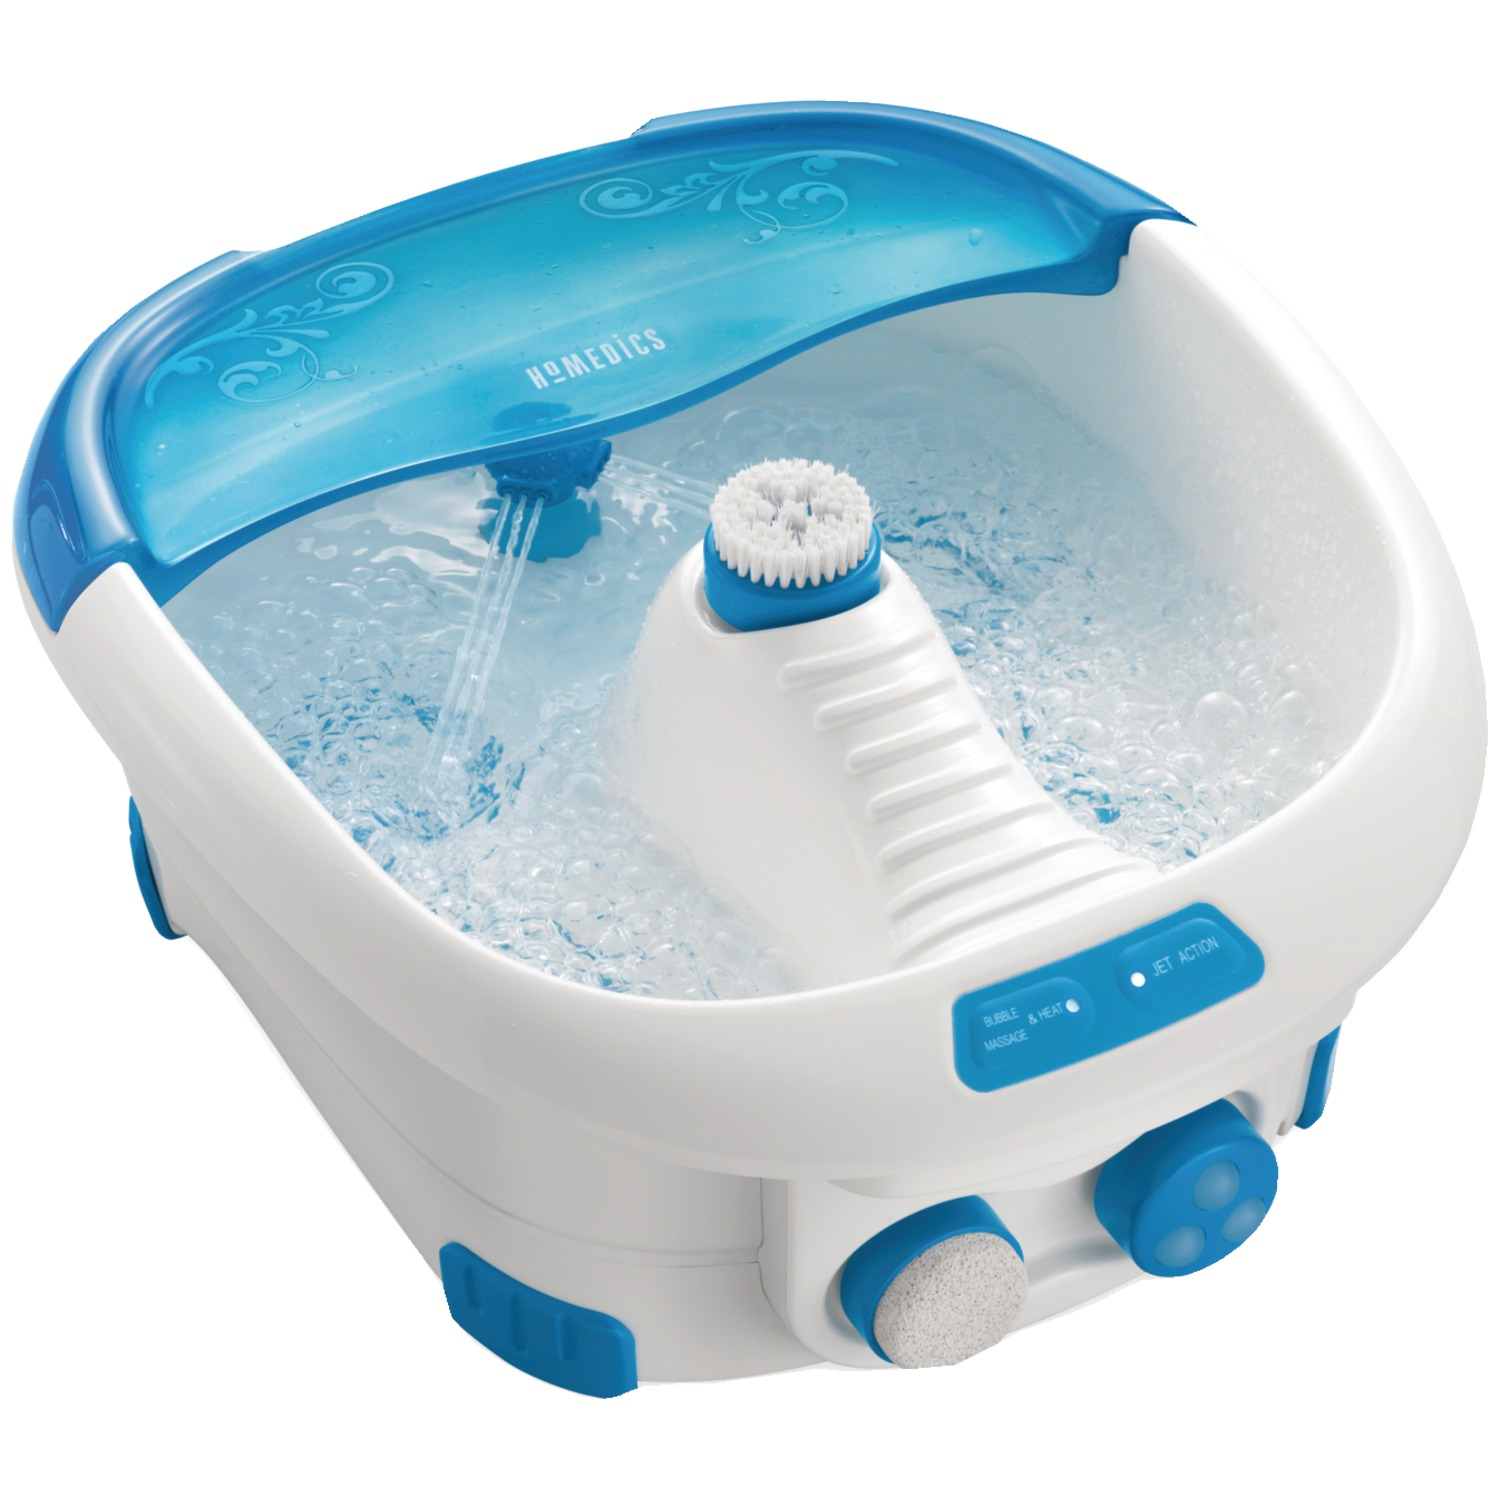 Homedics Fb-300-thp Pedicure Spa Footbath With Heat